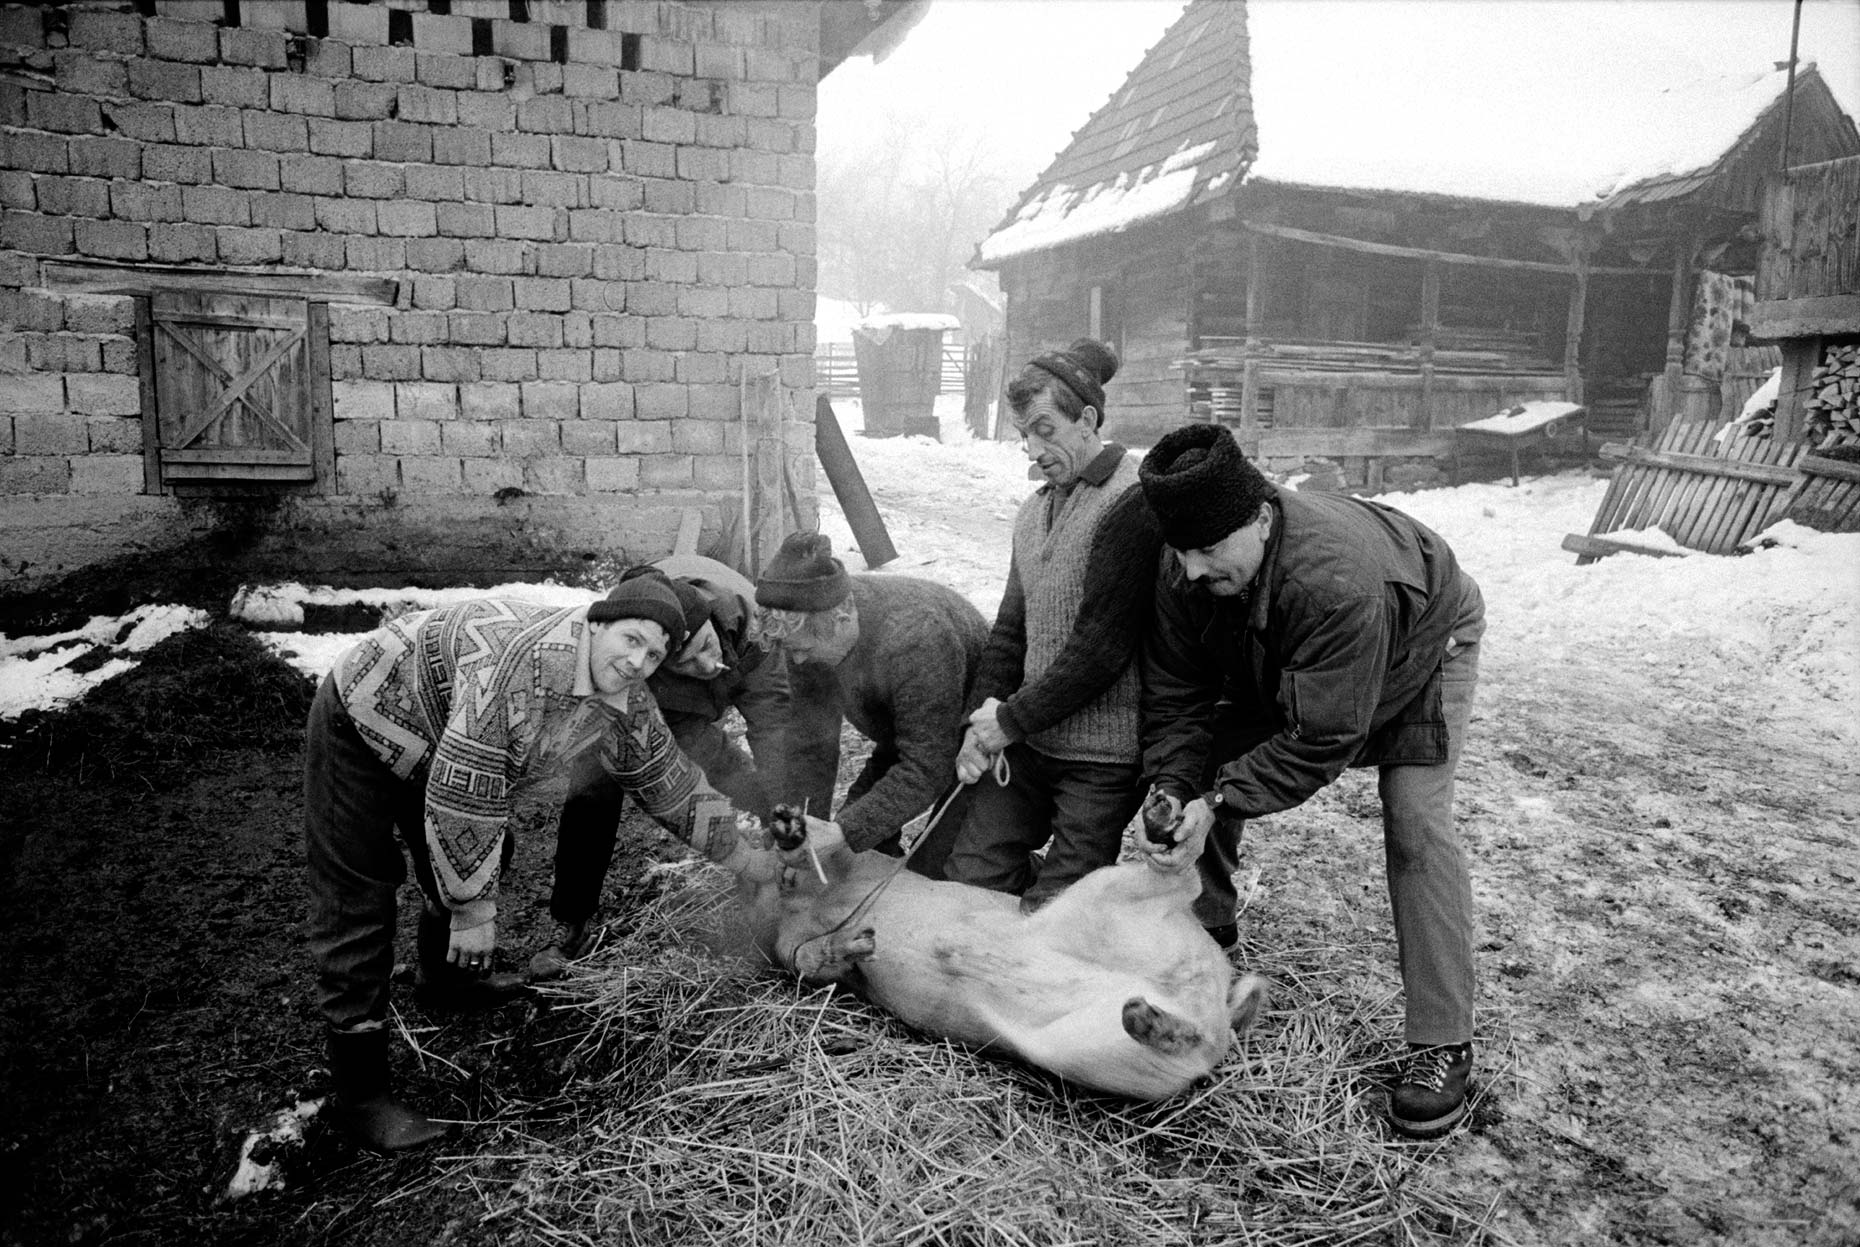 020_Ellicson_2003_Pig_slaughter_group